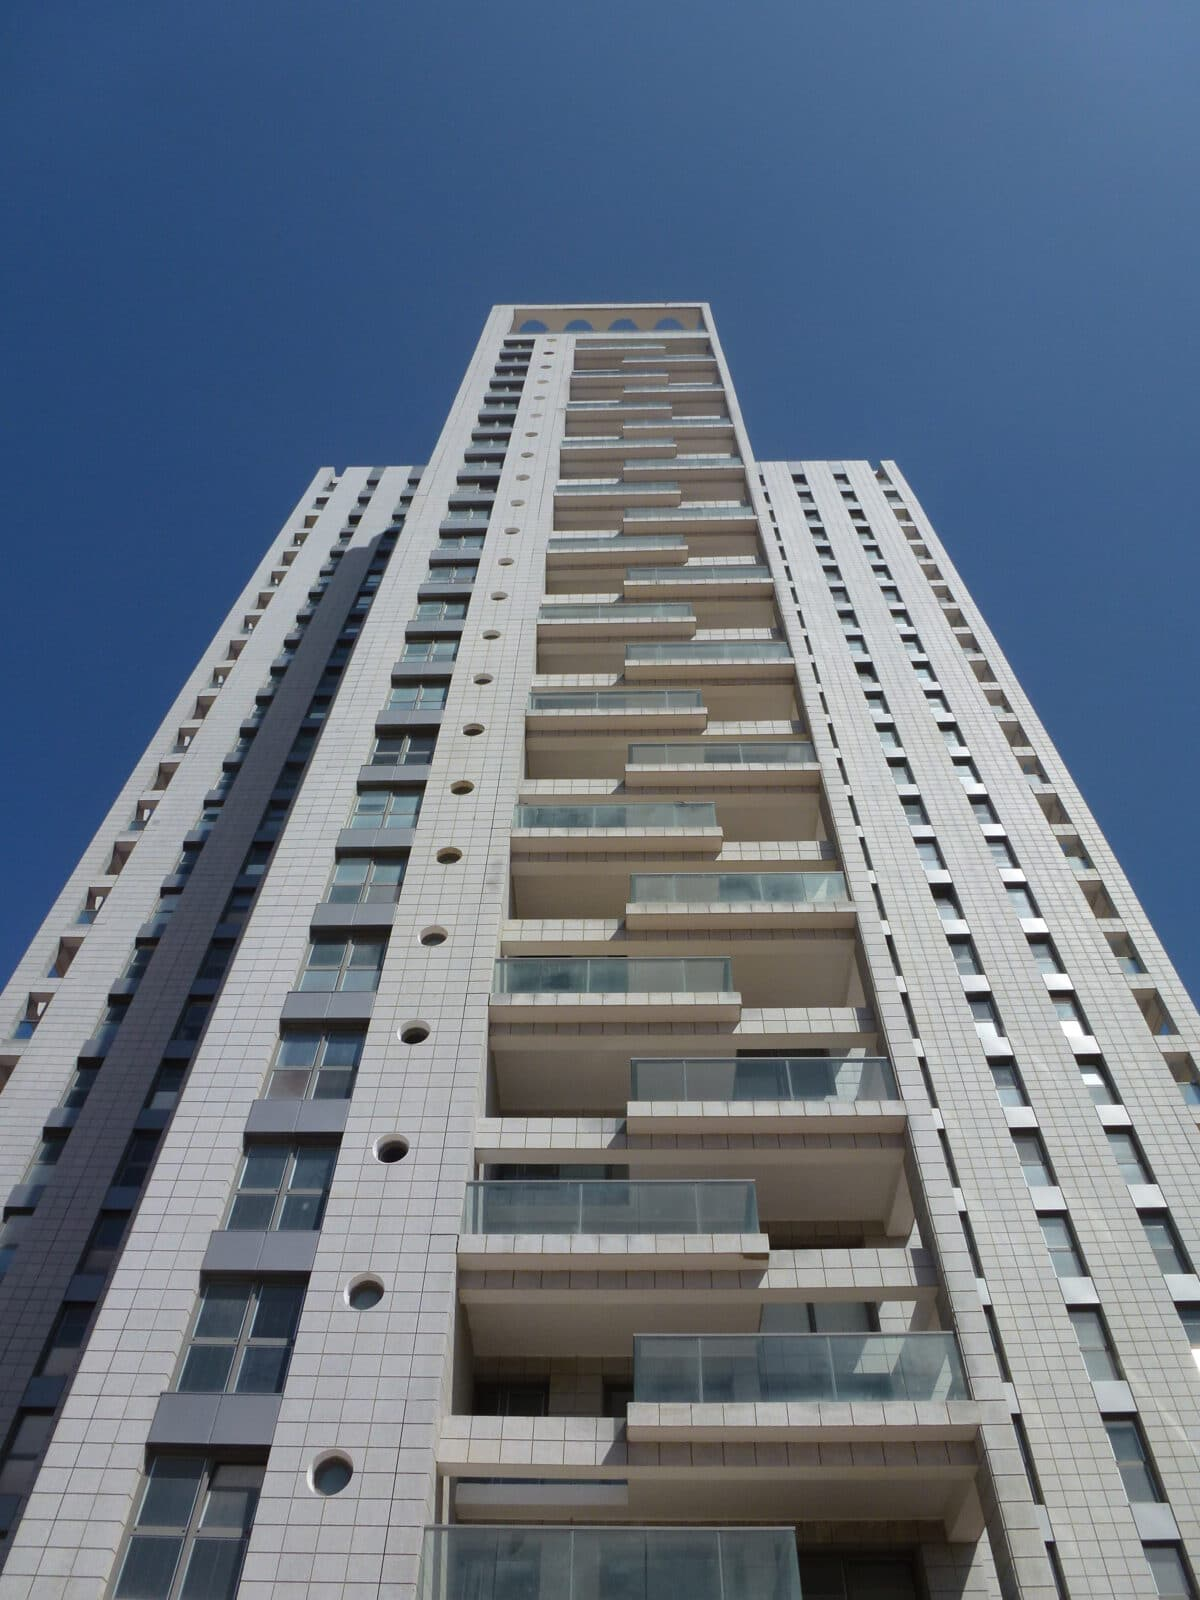 RESIDENTIAL TOWER GIVAT SHMUEL